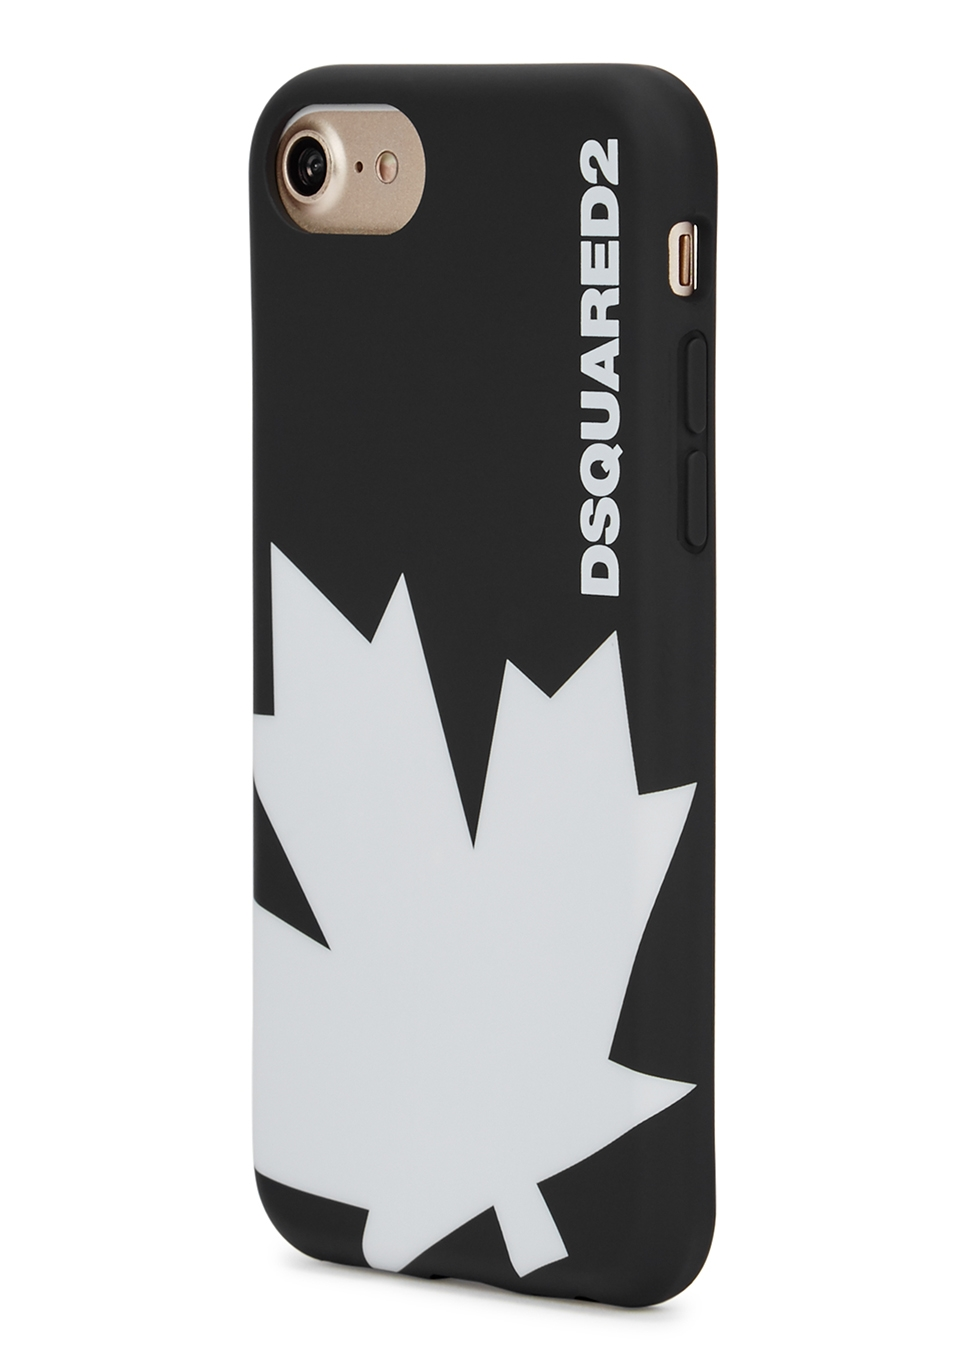 quality design bdf99 c7b53 Maple leaf iPhone 6/6S/7/8 cover